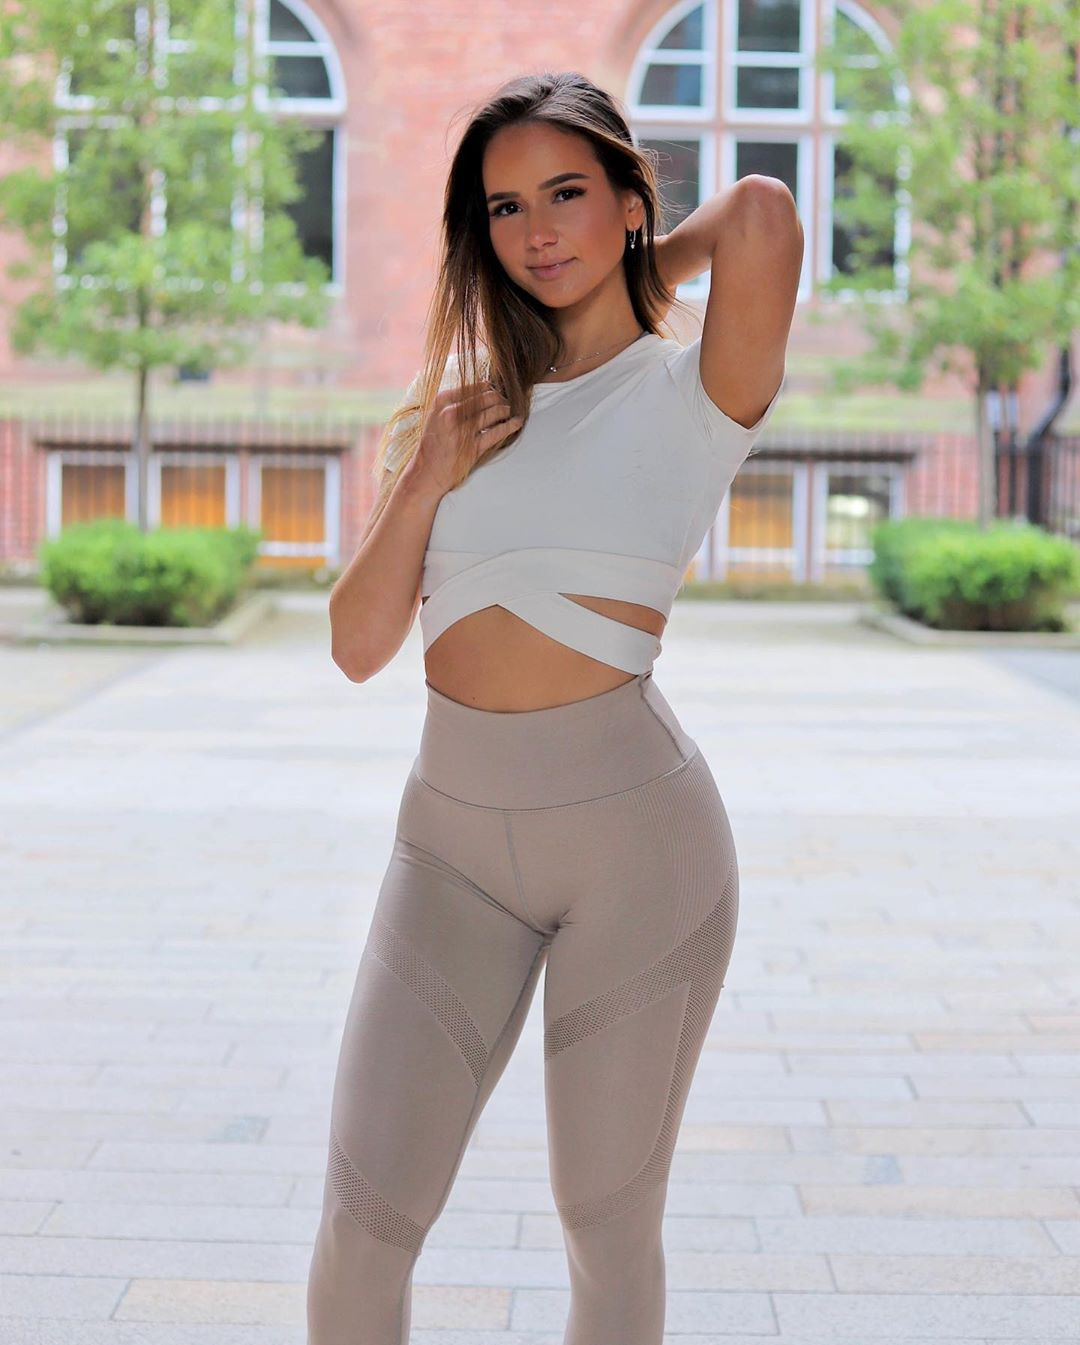 white outfits for girls with active pants, sportswear, crop top